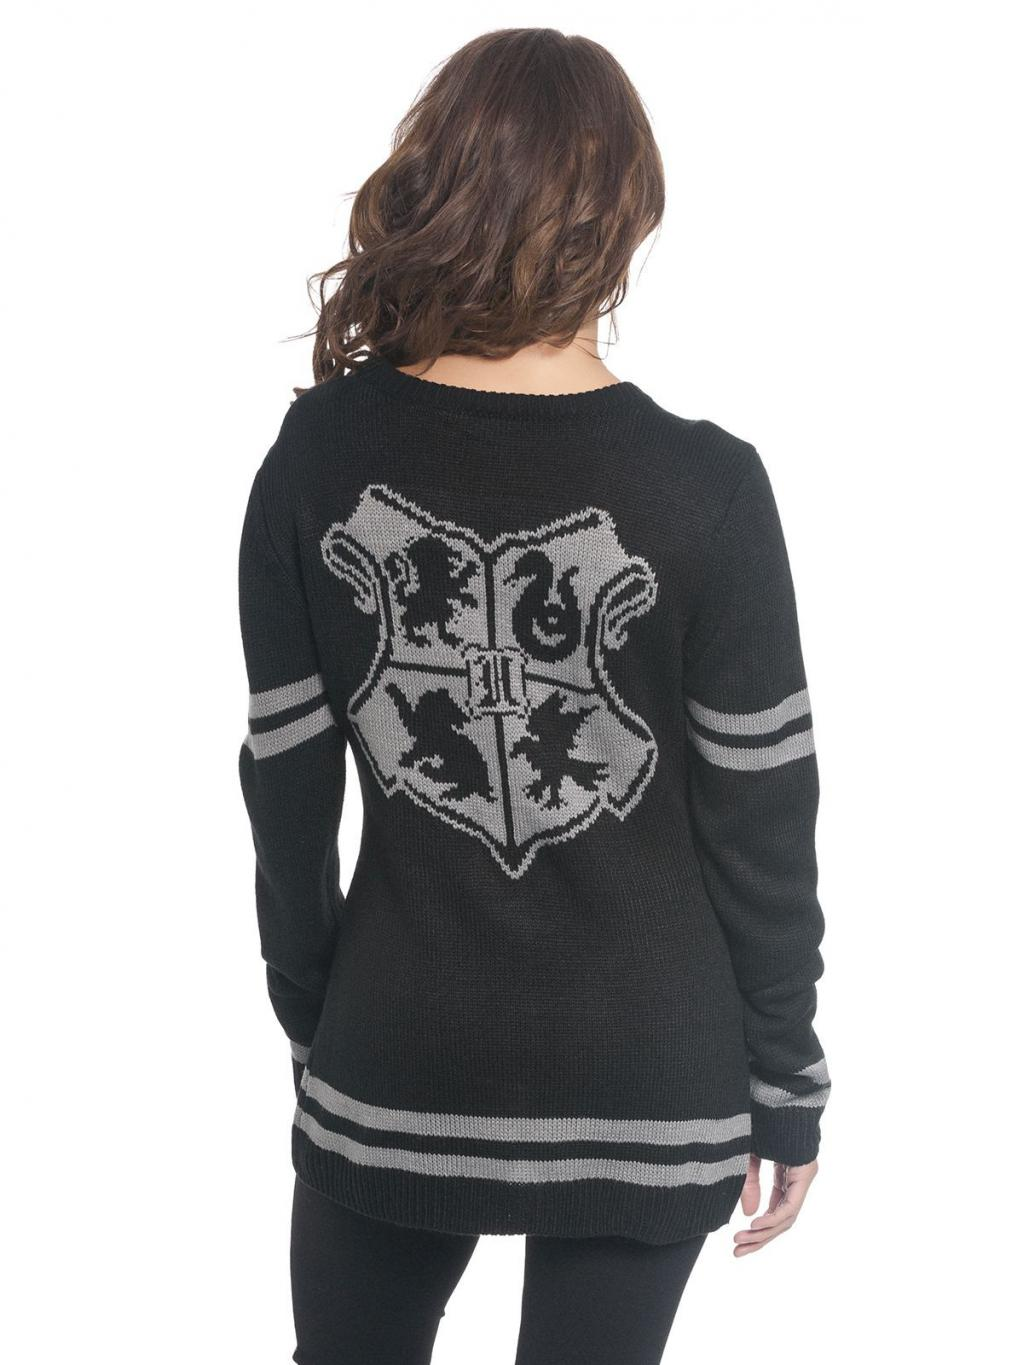 HARRY POTTER - Cardigan - Hogwarts Girl Knit (XL)_3